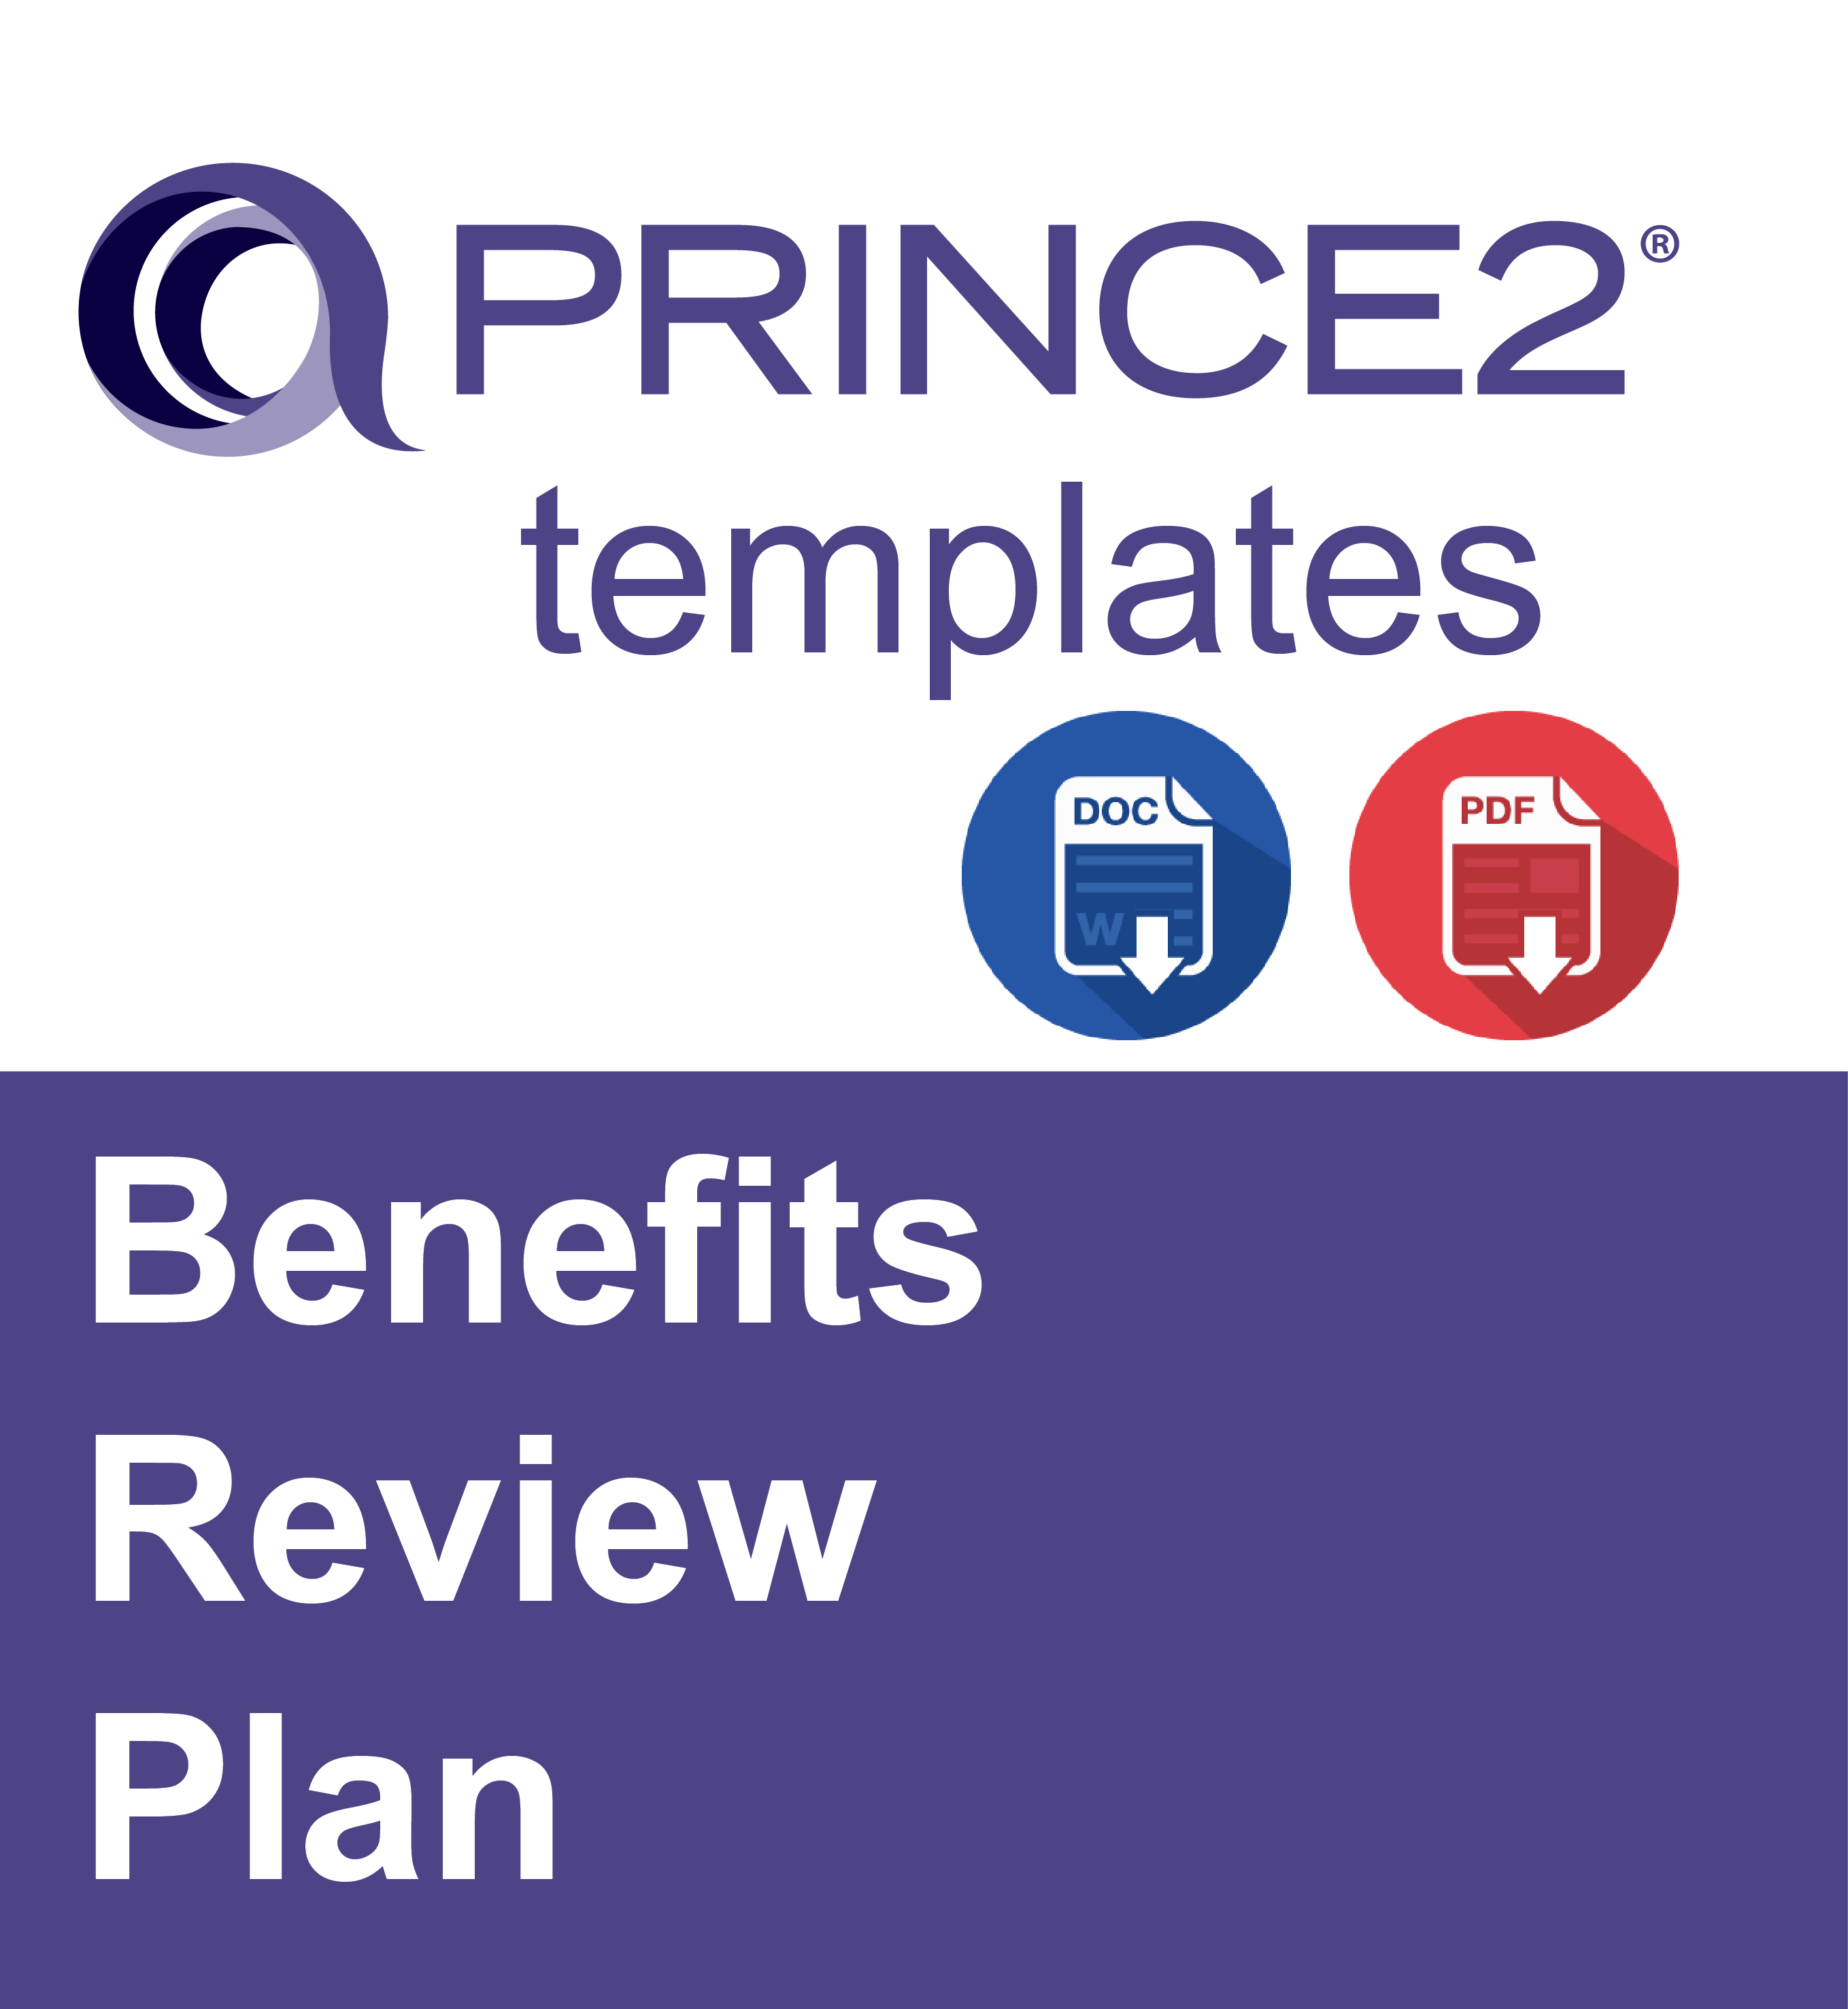 Prince2 benefits review plan ebalance for Princess trust business plan template